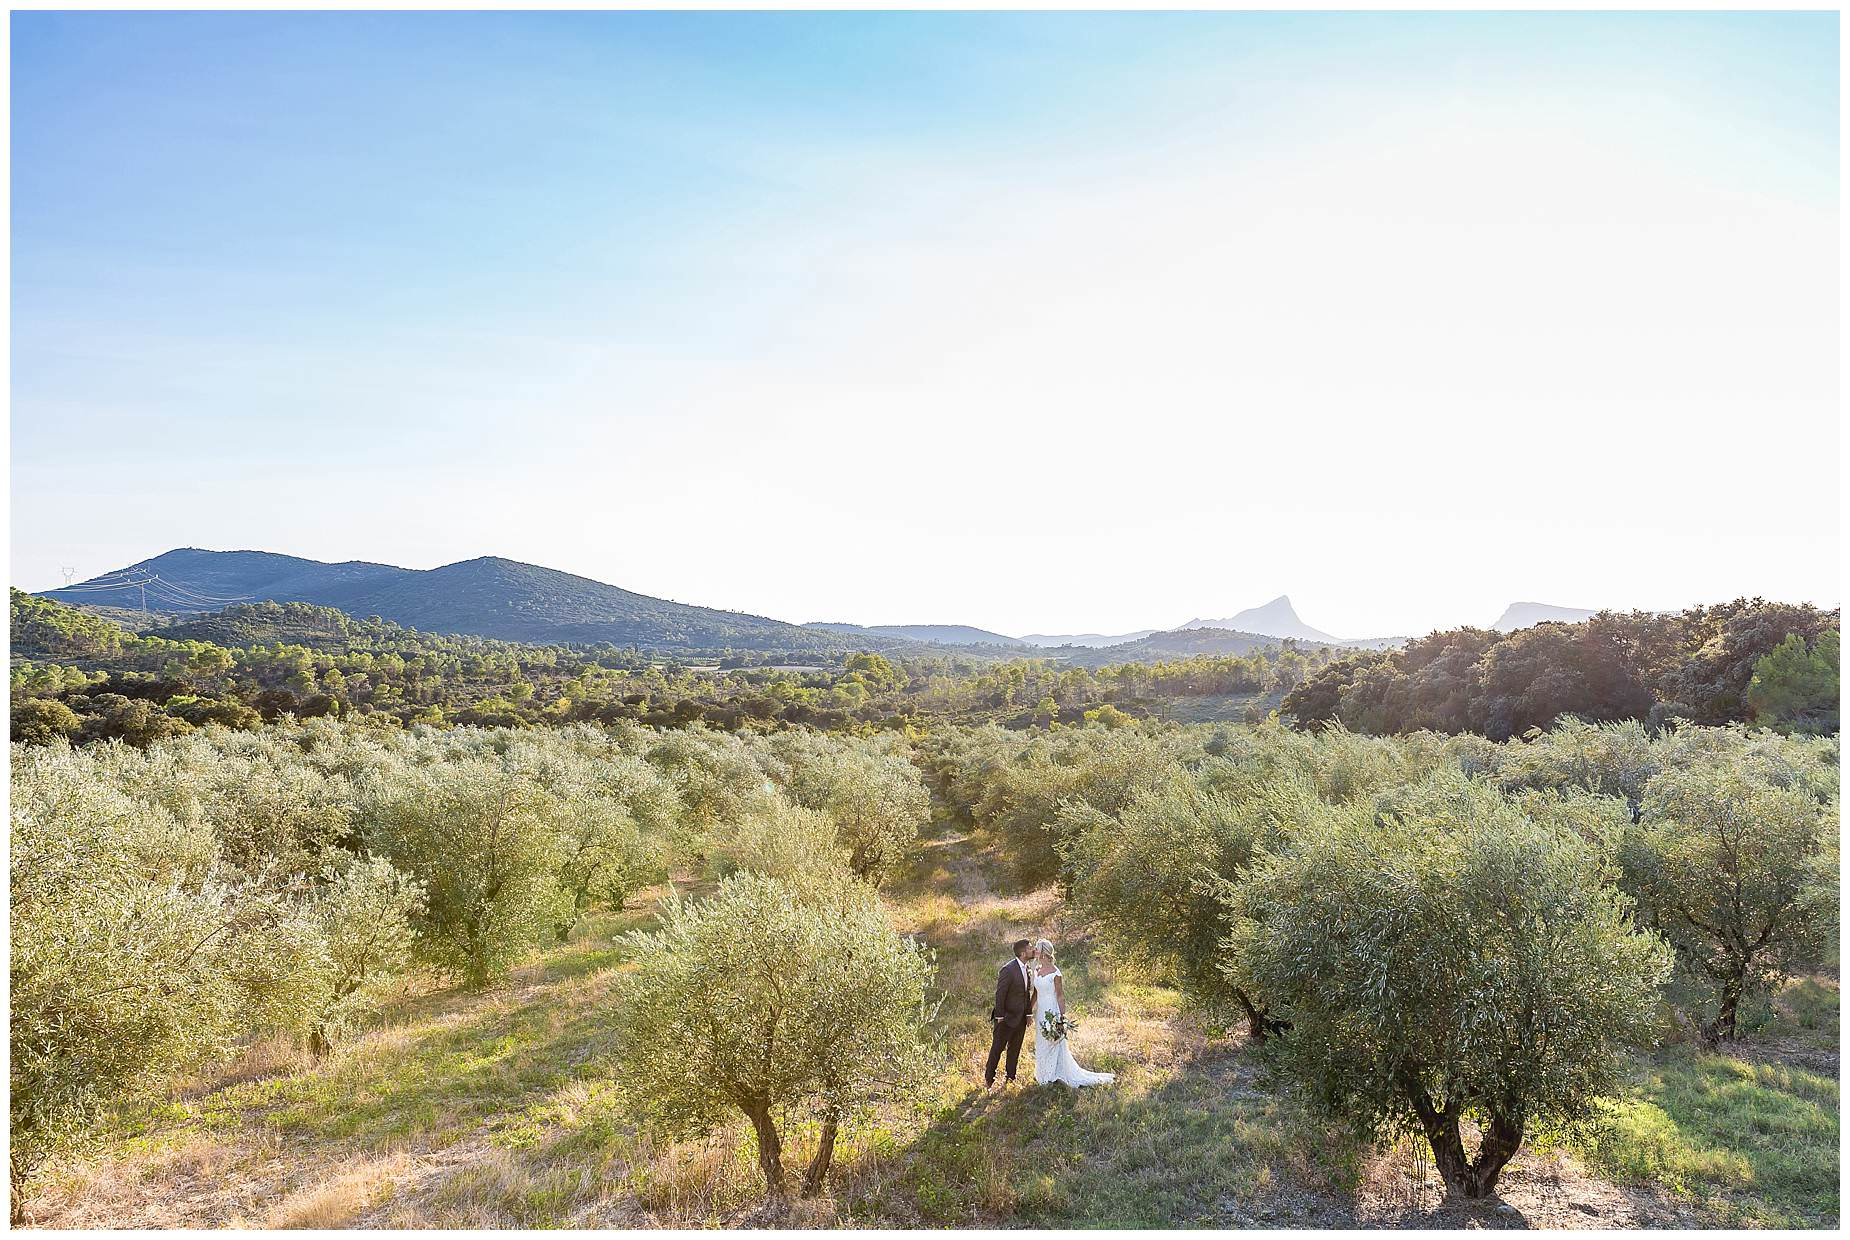 Domaine Saint Germain weddings